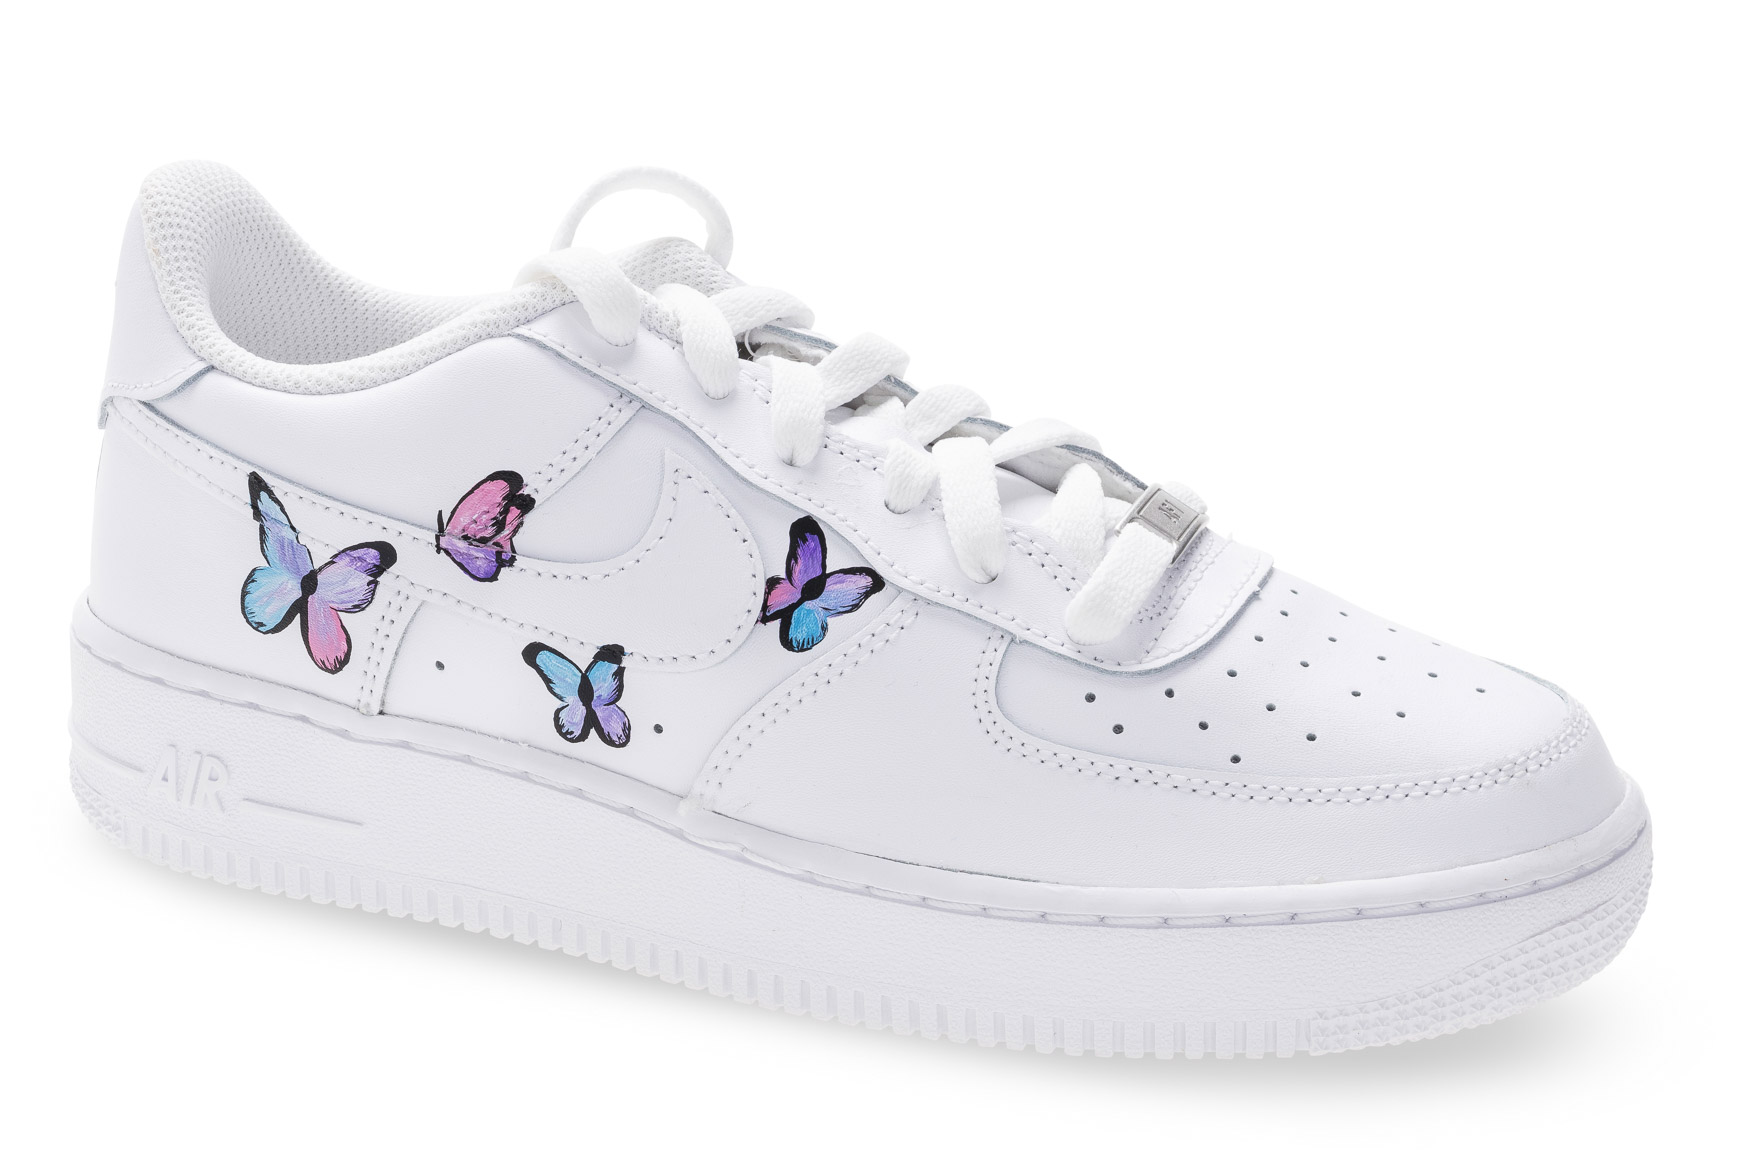 Nike Air Force 1 Schoen Colourful Butterfly